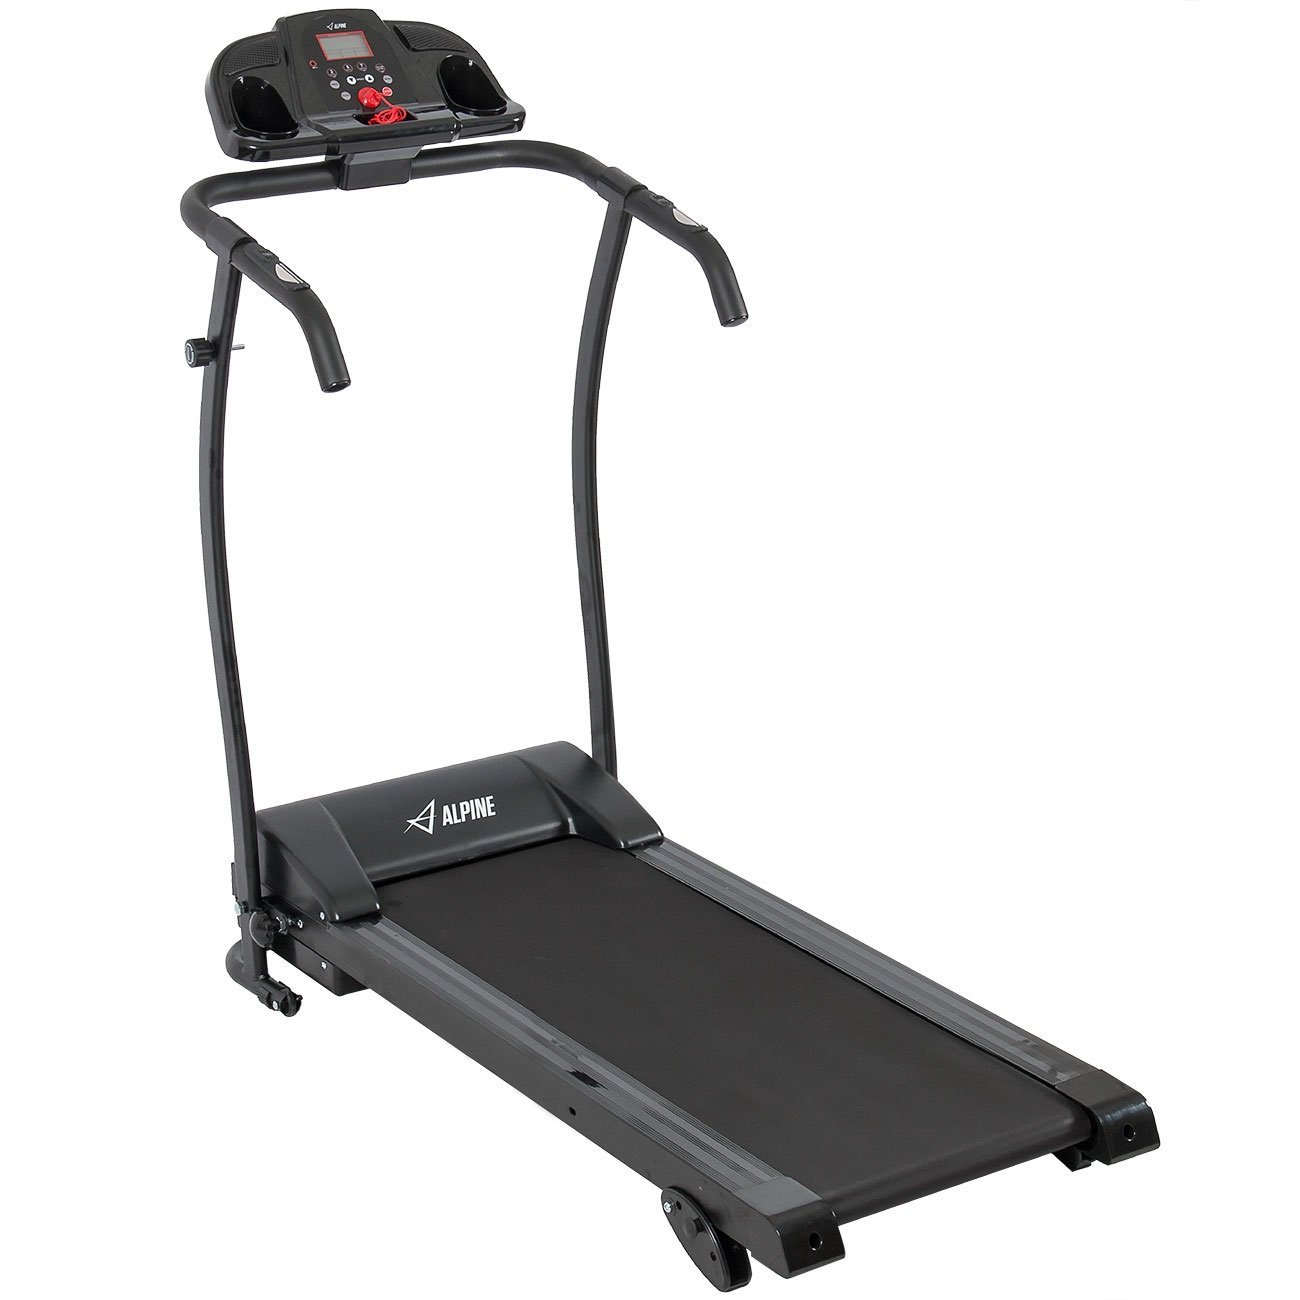 ALPINE 1.7HP Folding Electric Treadmill